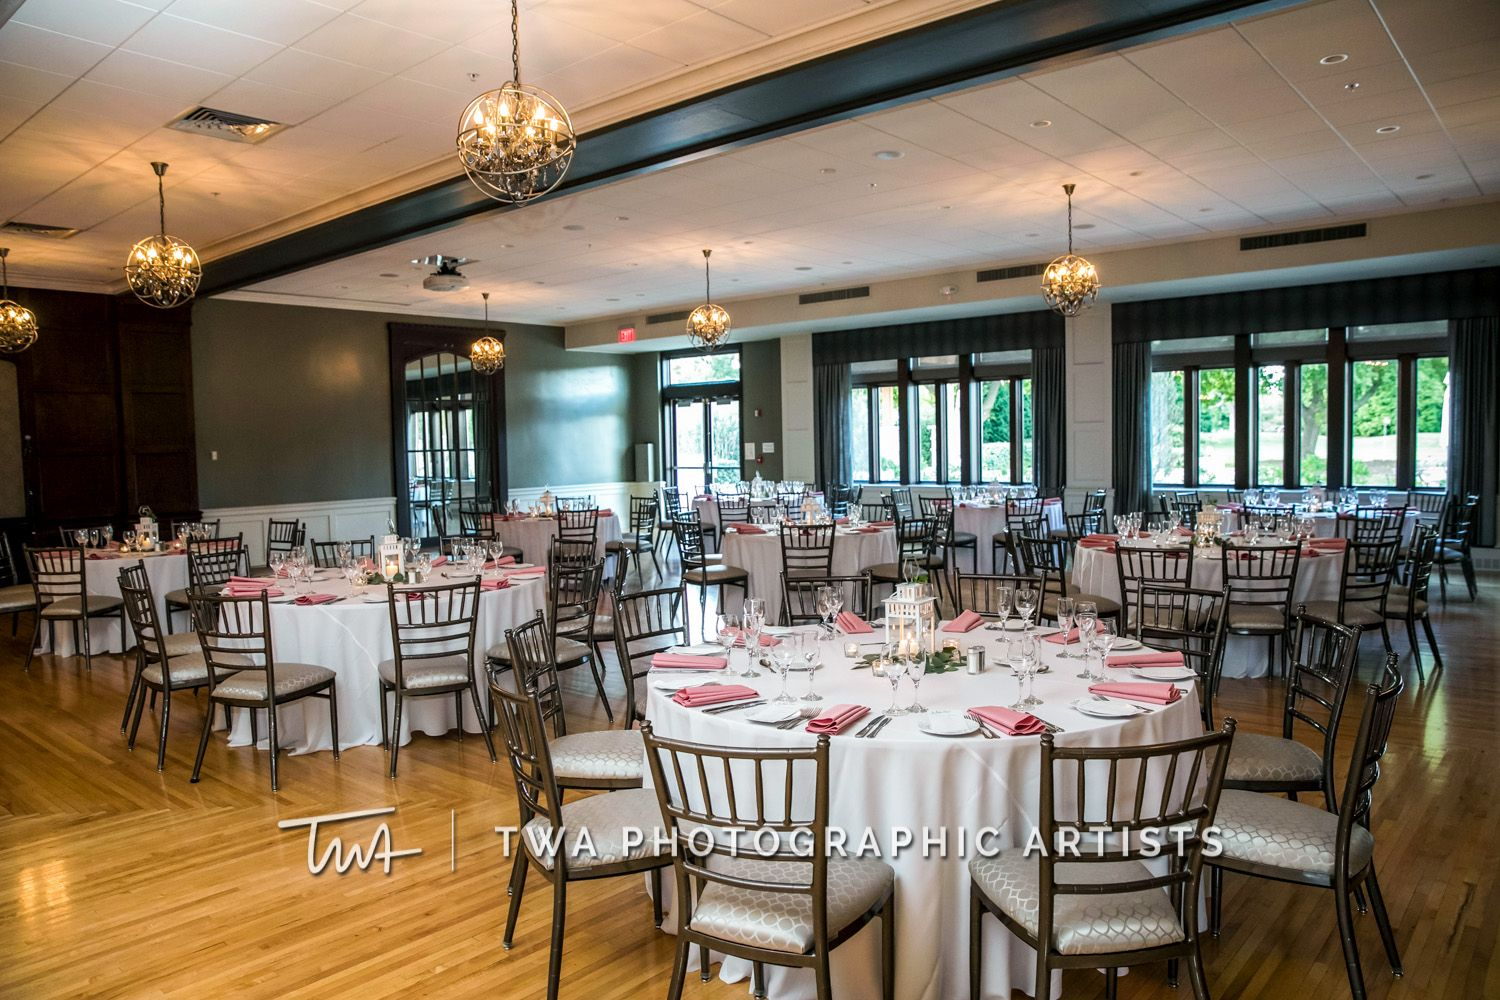 Twa Photographic Artists Weddings At Chevy Chase Click The Photo To See Our Website Photographic Artist Chevy Chase Country Club Chevy Chase